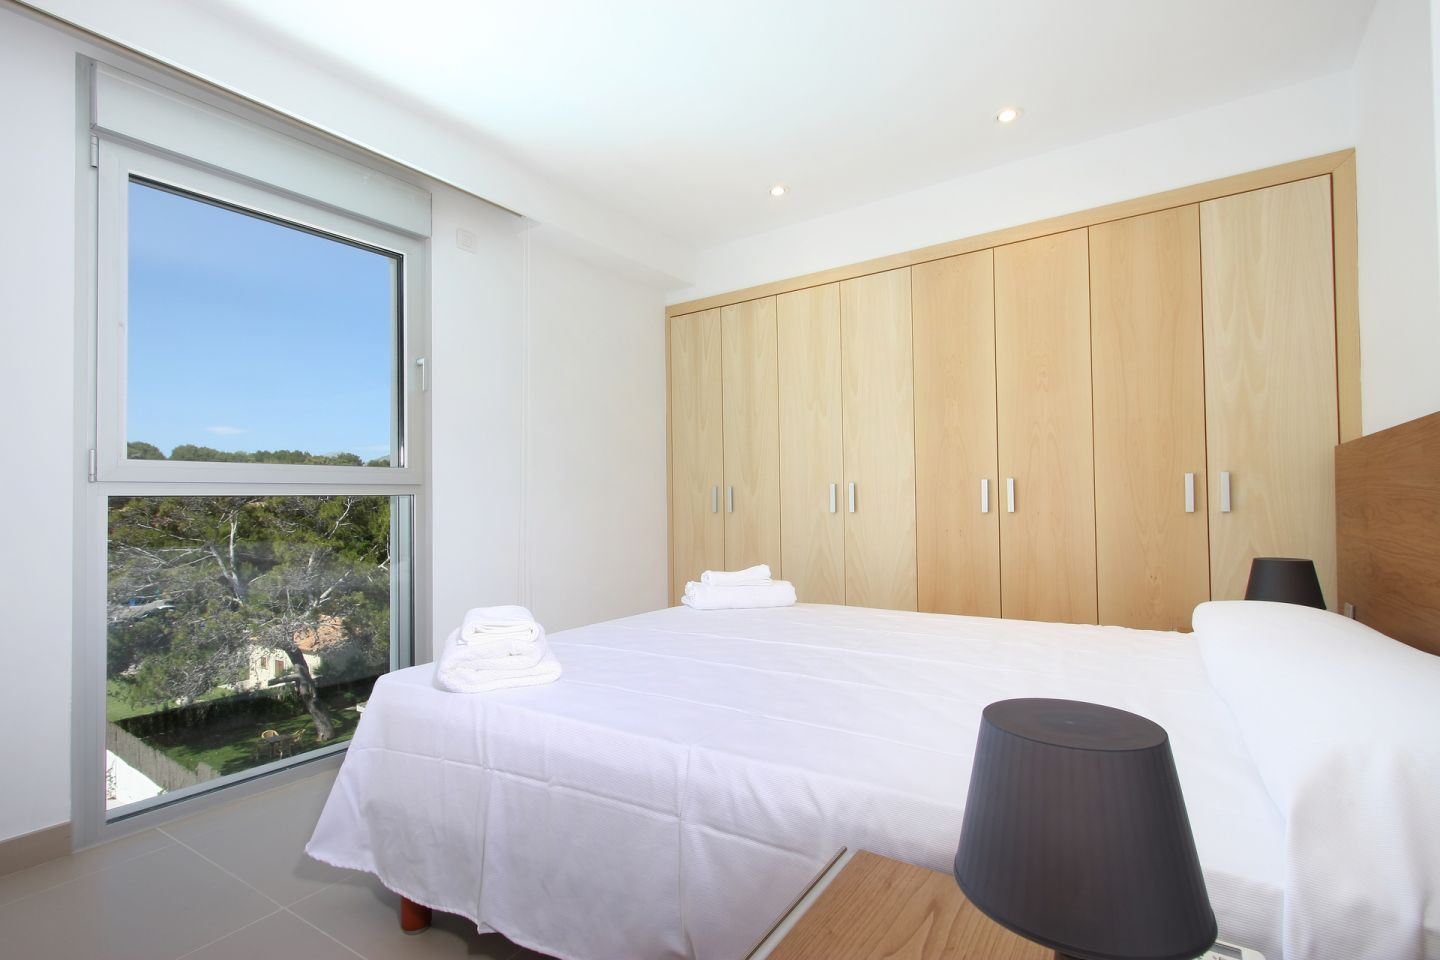 2 Bed Penthouse for sale in Cala San Vicente 9